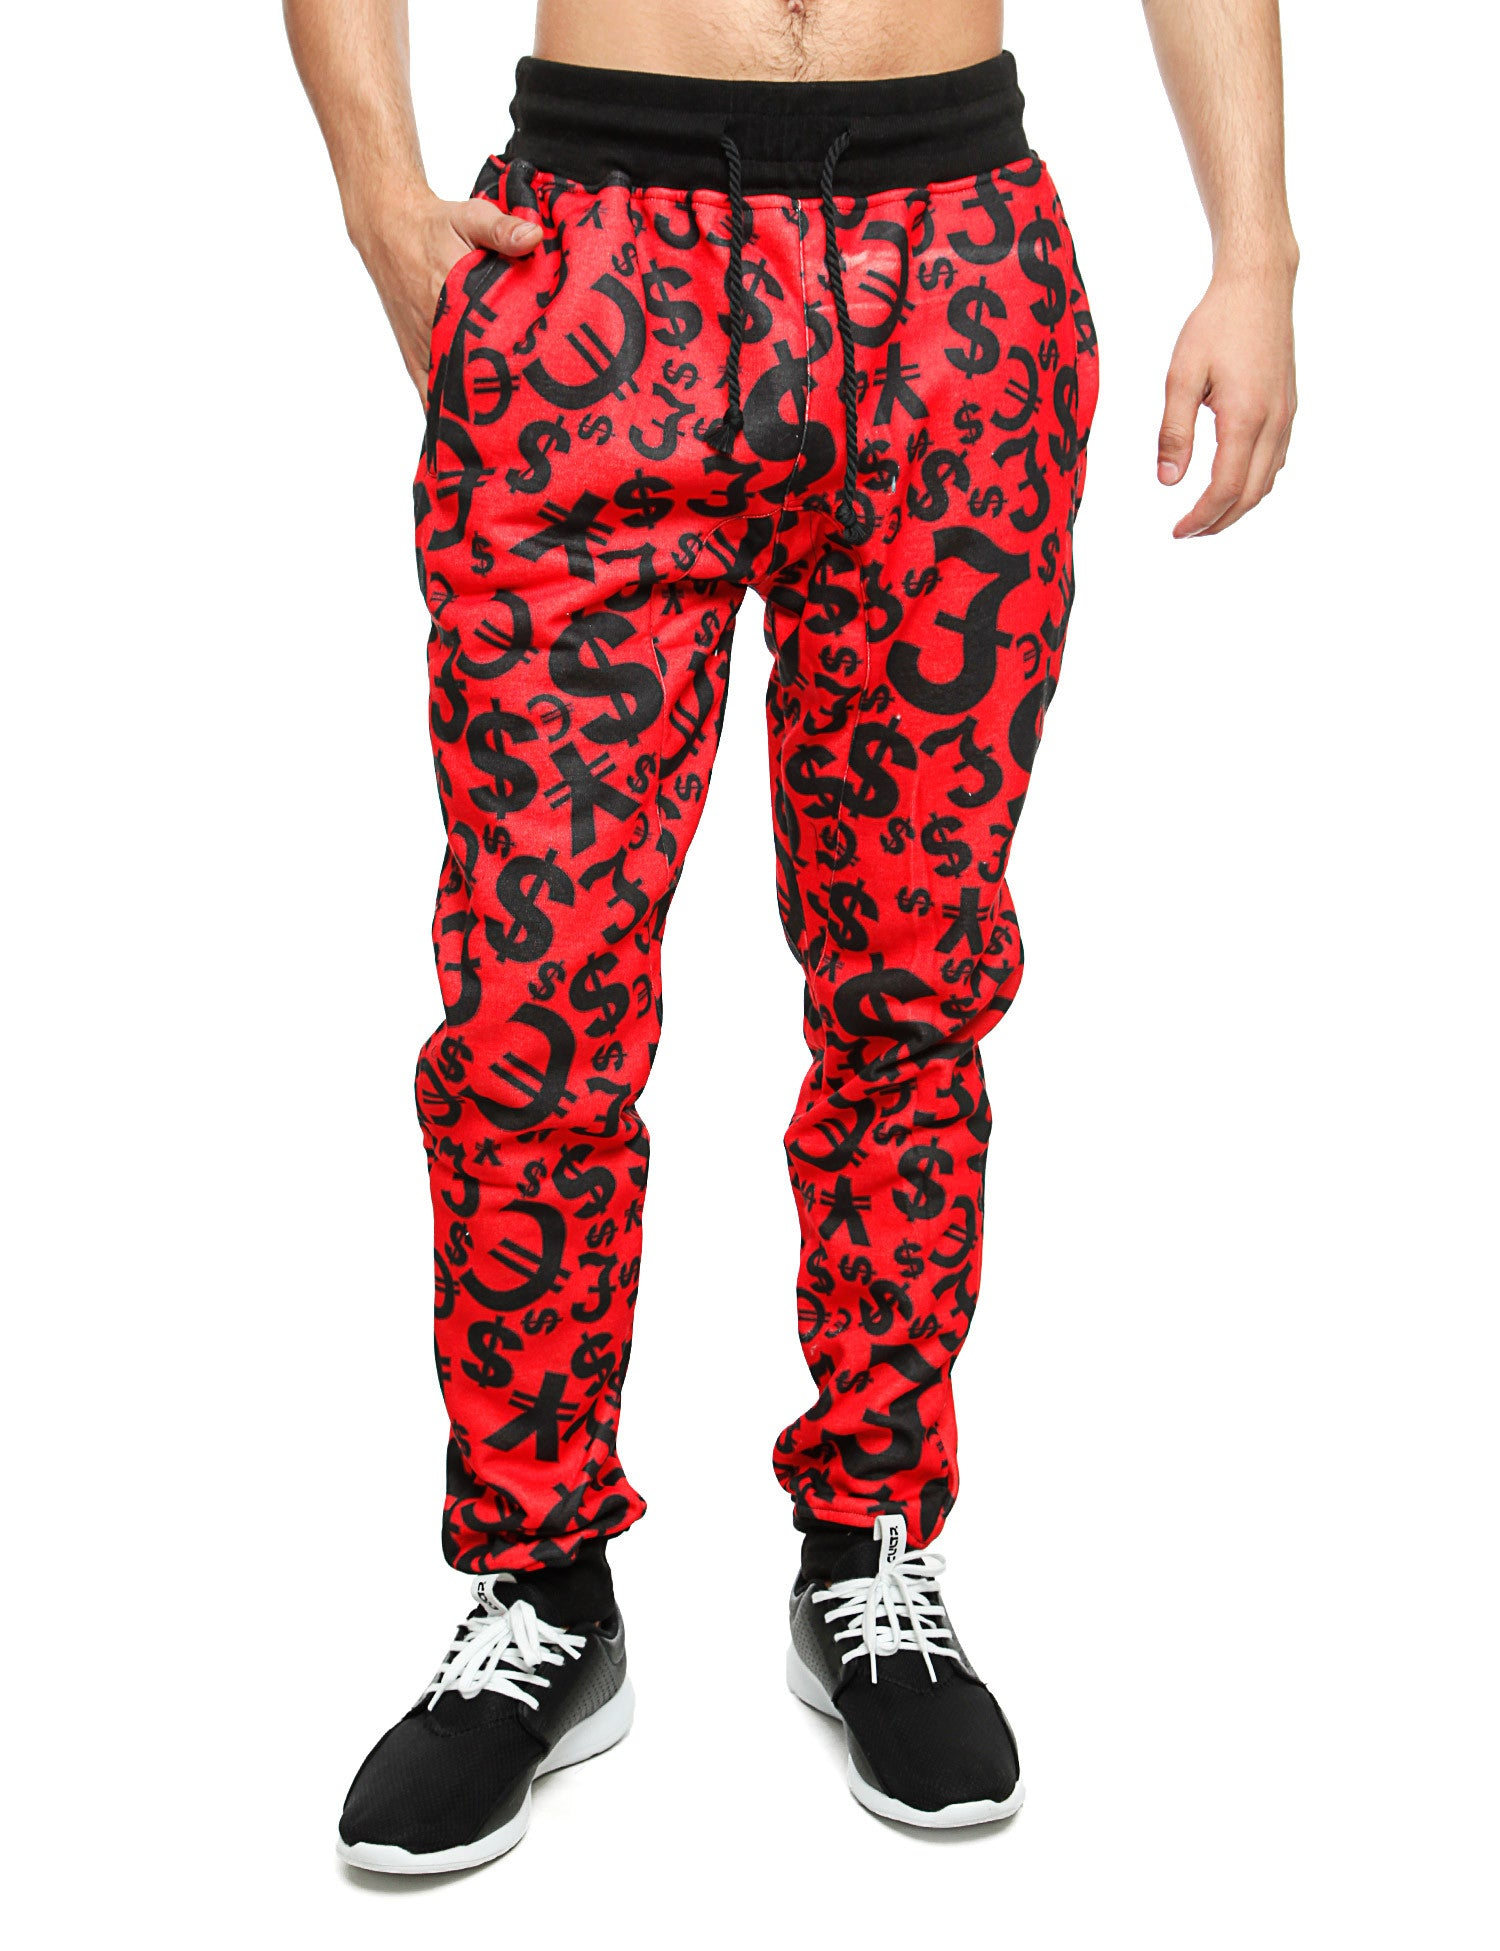 Imperious Money Tree Sweatpant FP534 Red